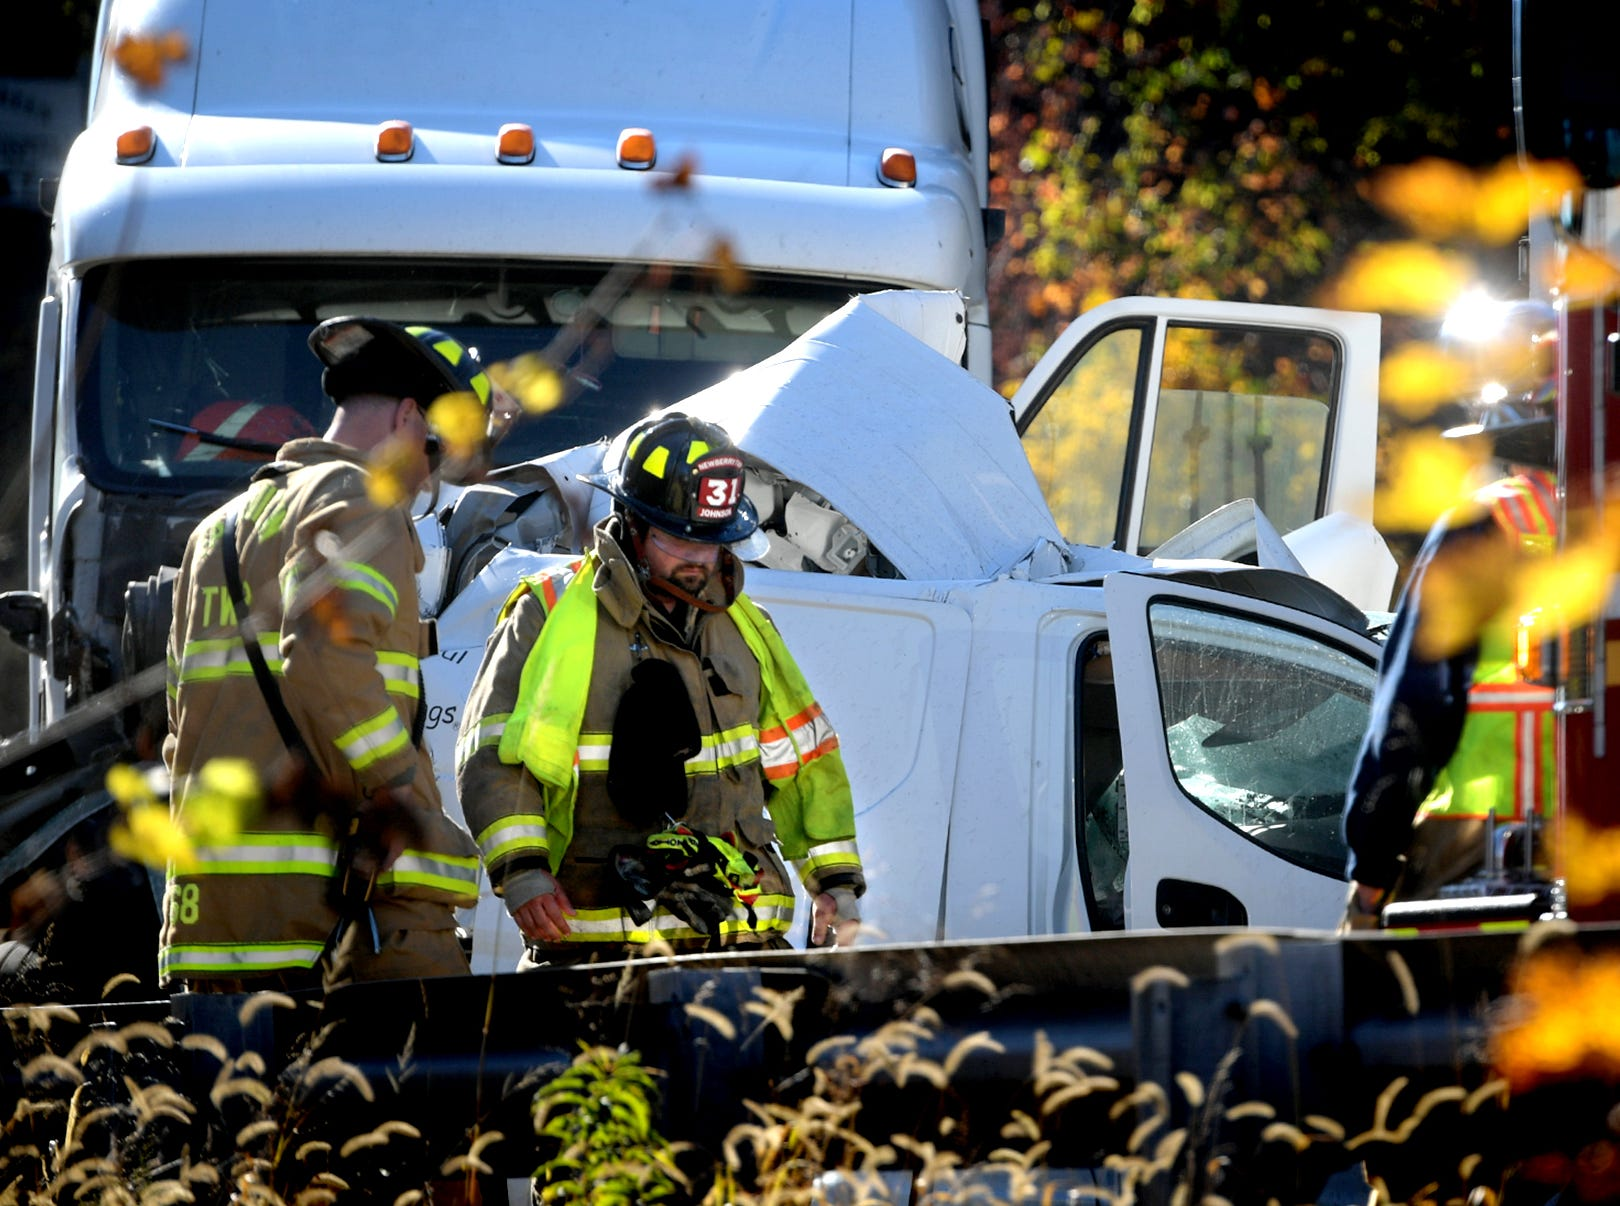 Firefighters respond to the scene of a fatal accident on northbound I-83 south of Exit 34, Valley Green, Thursday, Nov. 8, 2018. Northbound lanes of the interstate were closed for several hours after the crash which occurred just before 9 a.m. Bill Kalina photo